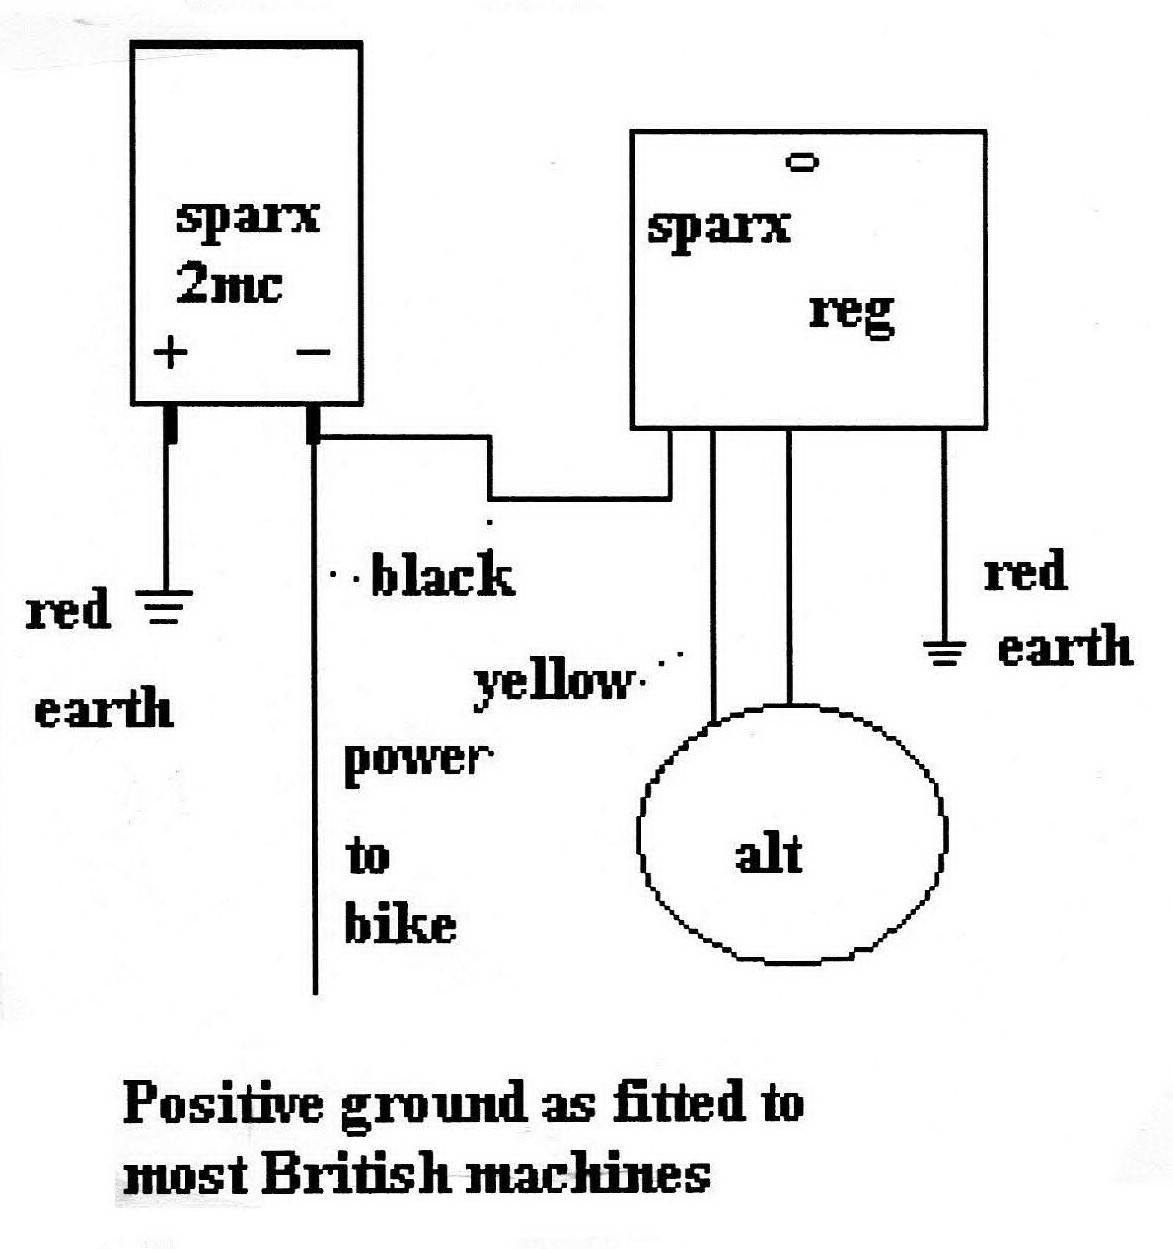 sparx electronic ignition wiring diagram